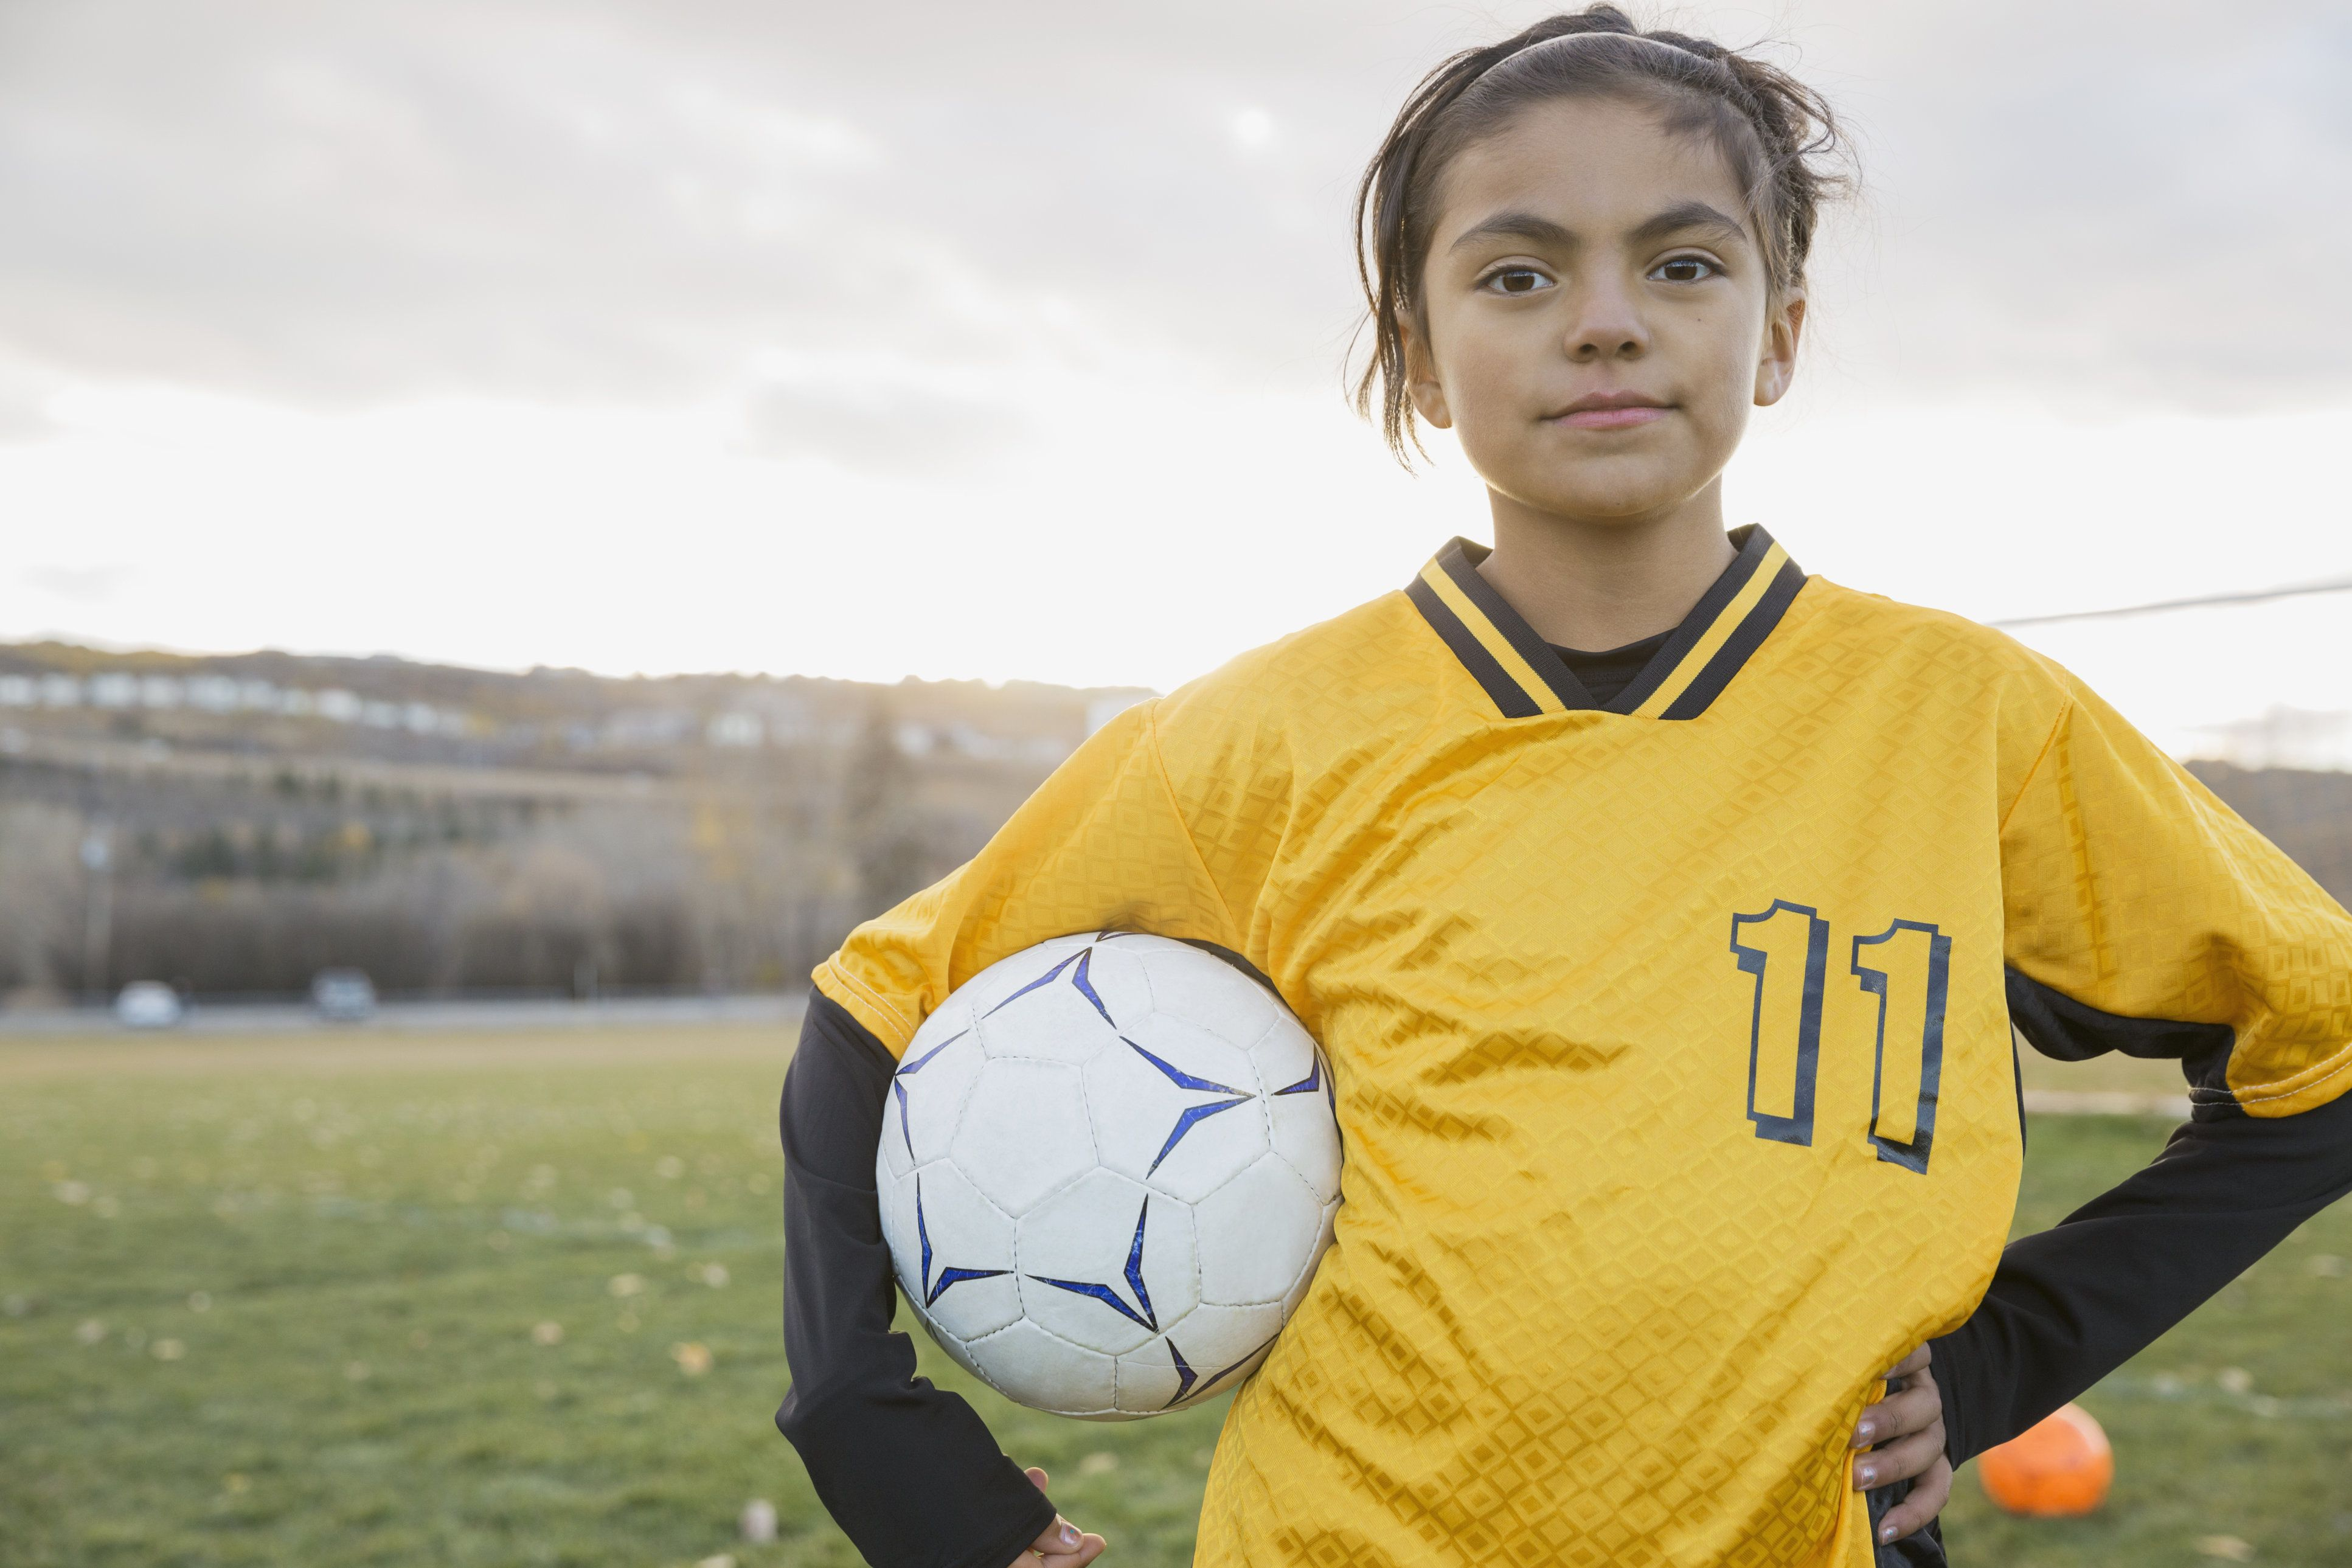 Girls Play Less Sport Than Boys: Here Are 6 Ways You Can Change